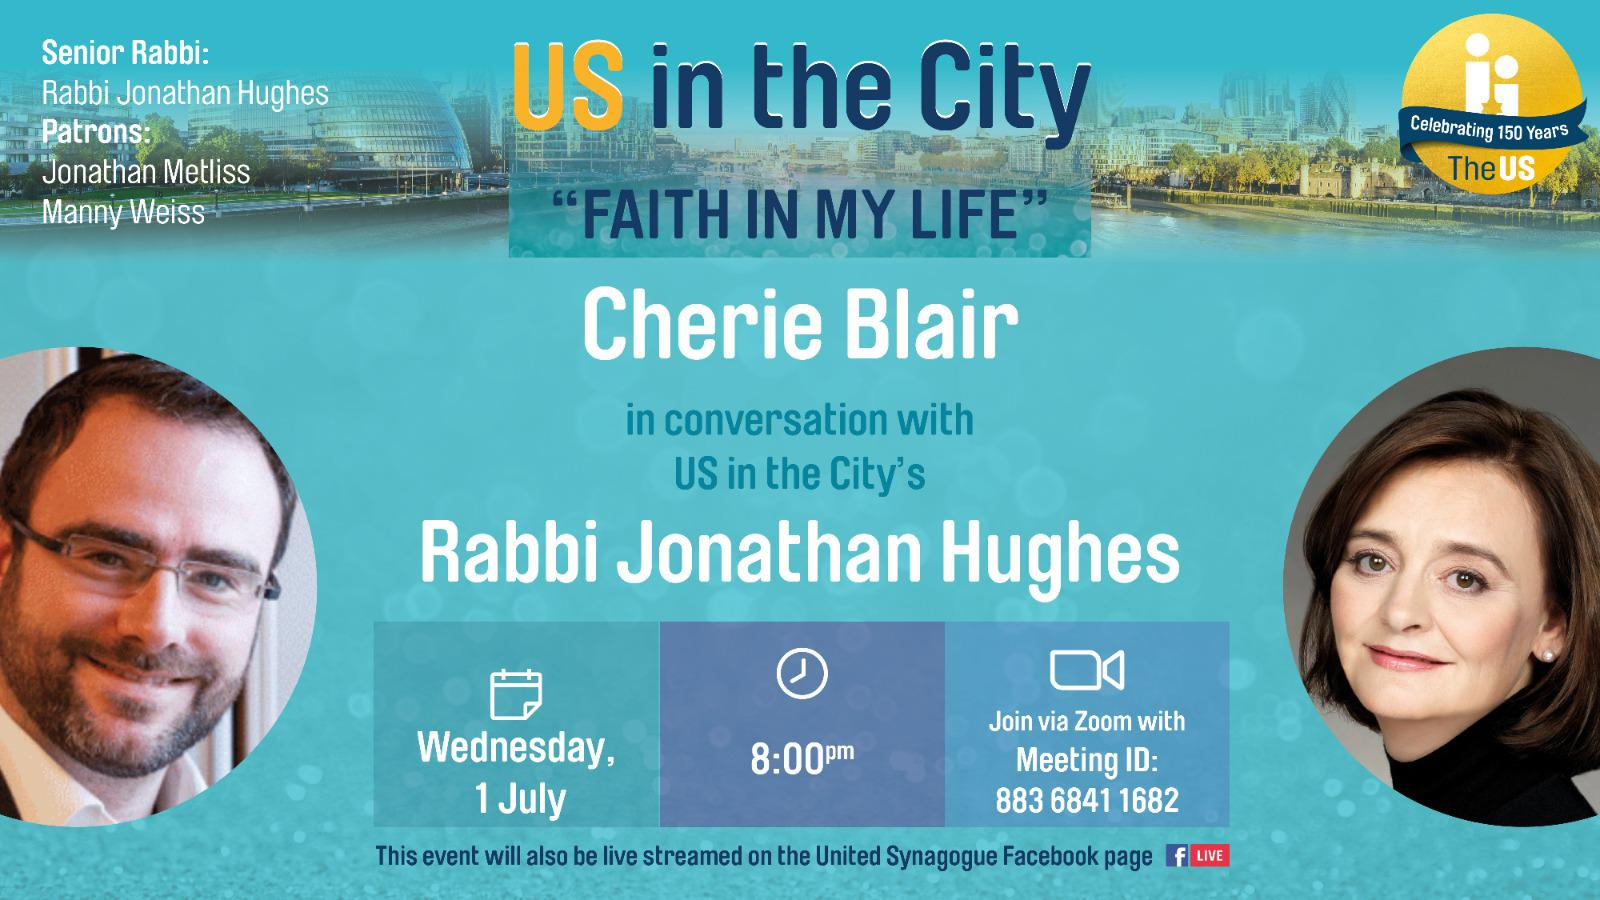 image of Cherie Blair in conversation with Rabbi Jonathan Hughes, Wednesday 1 July 8pm on the United Synagogue Facebook page